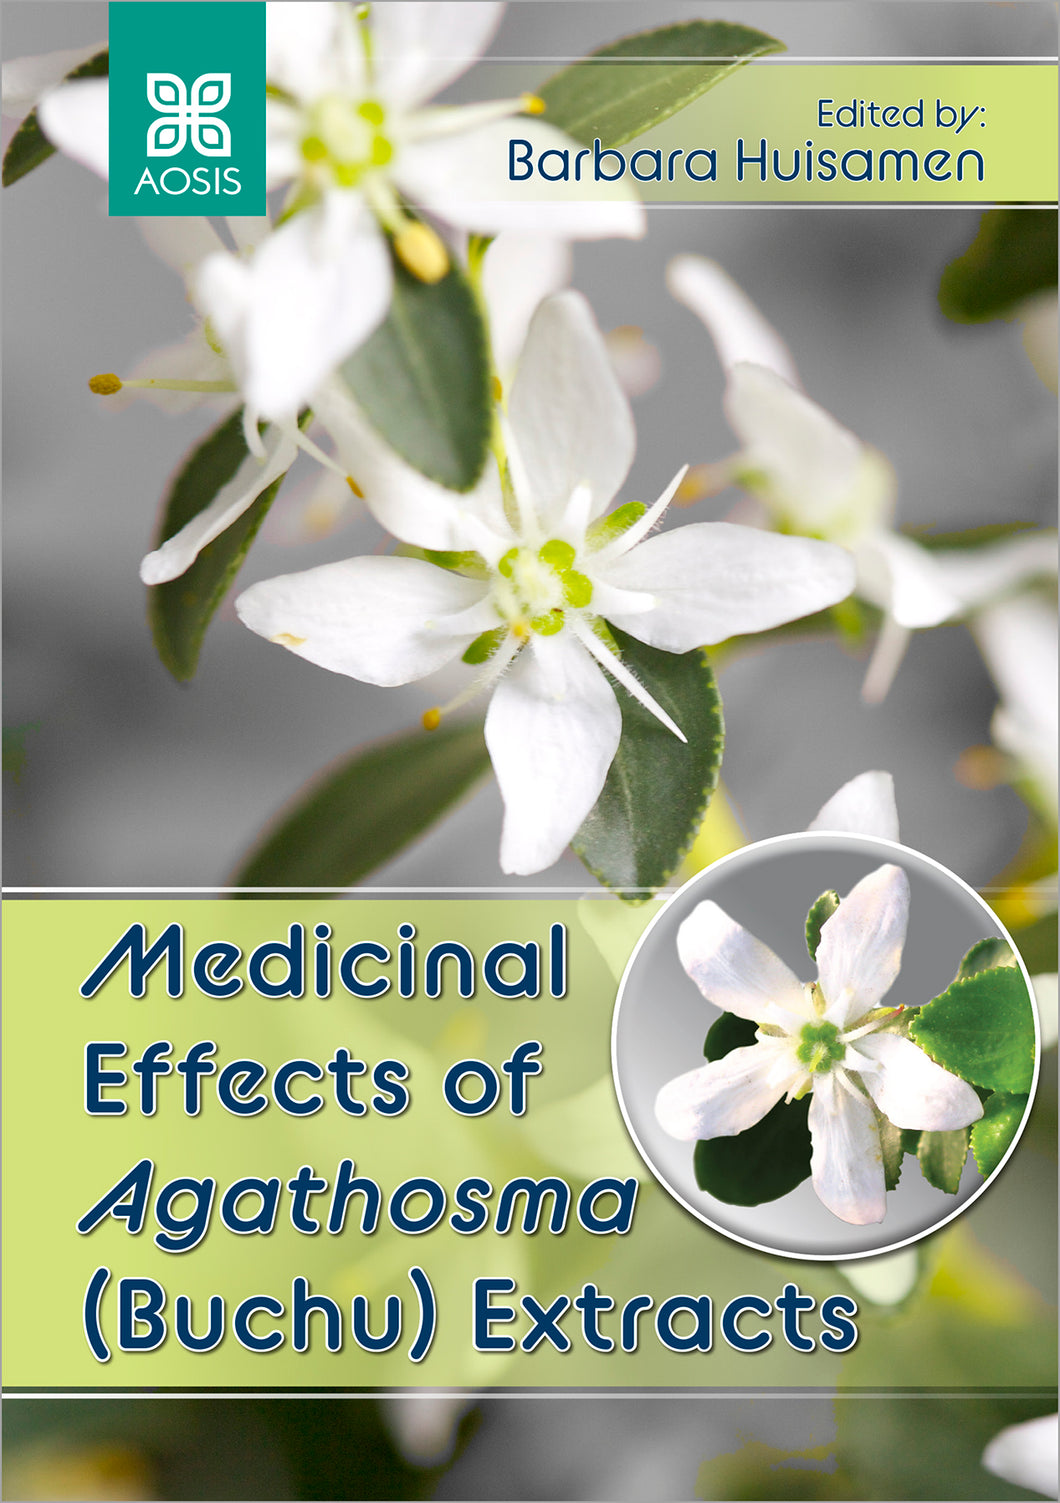 Medicinal Effects of Agathosma (Buchu) Extracts (Hardcover - Collectors item)